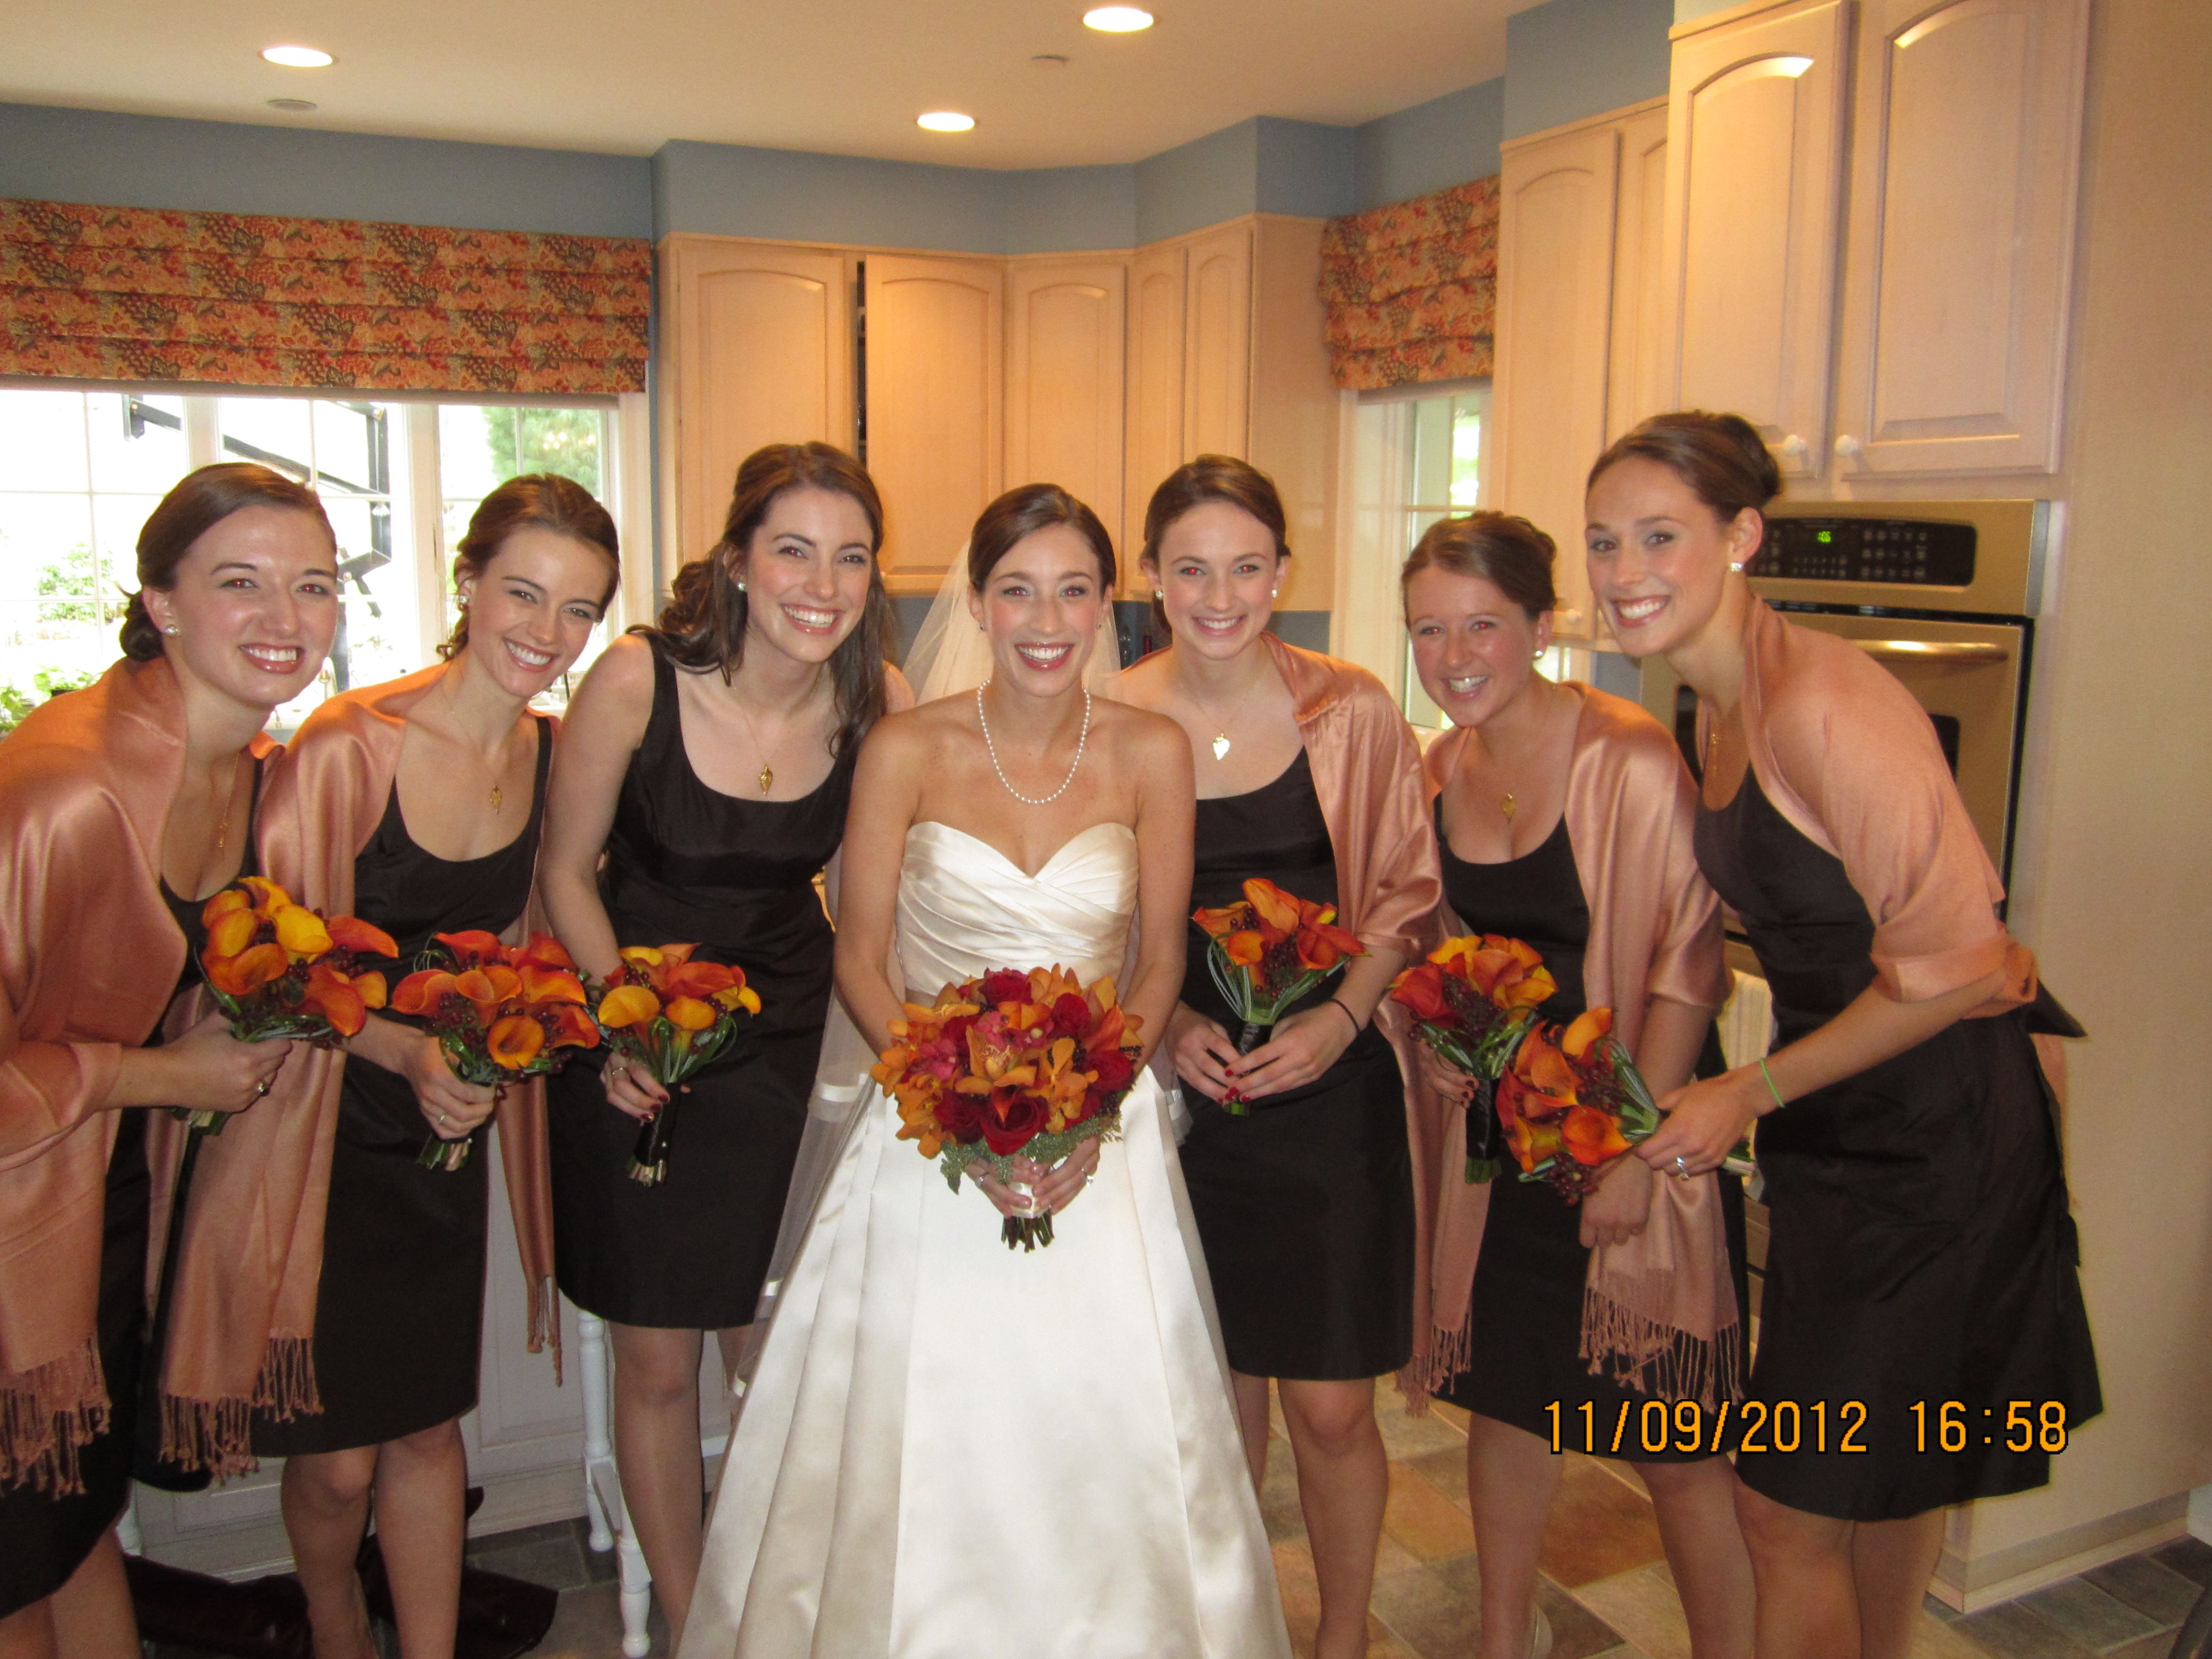 Brown bridesmaid dress white wedding dress fall bouquet fall brown bridesmaid dress white wedding dress fall bouquet fall wedding red bouquet ombrellifo Images